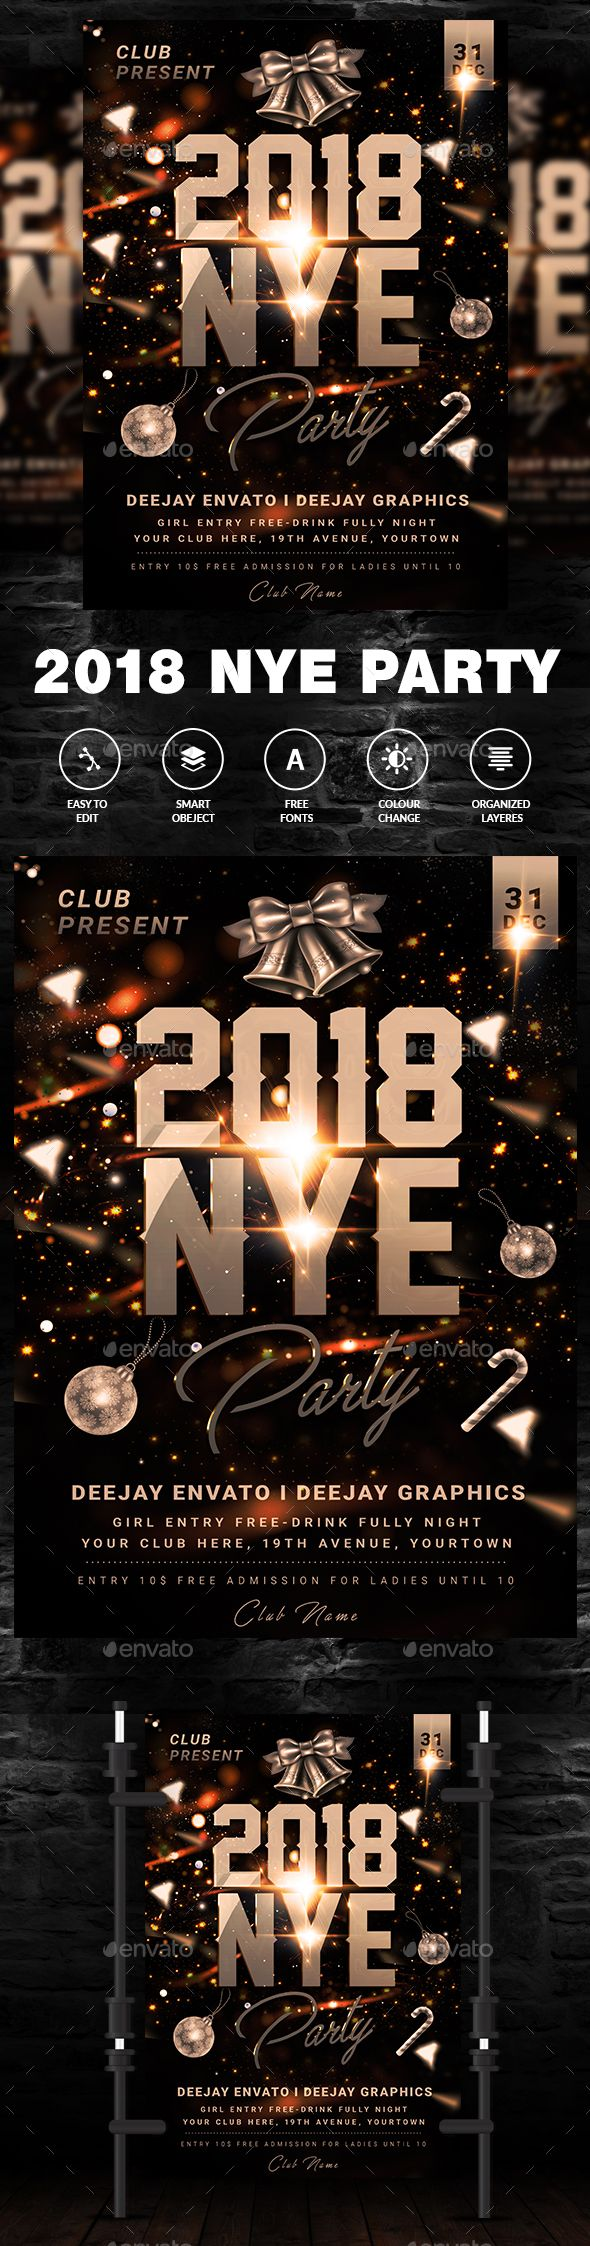 New Years Eve Party Flyer Template #x-mas #elegant  • Download here → https://graphicriver.net/item/new-years-eve-party-flyer-template/21086768?ref=pxcr